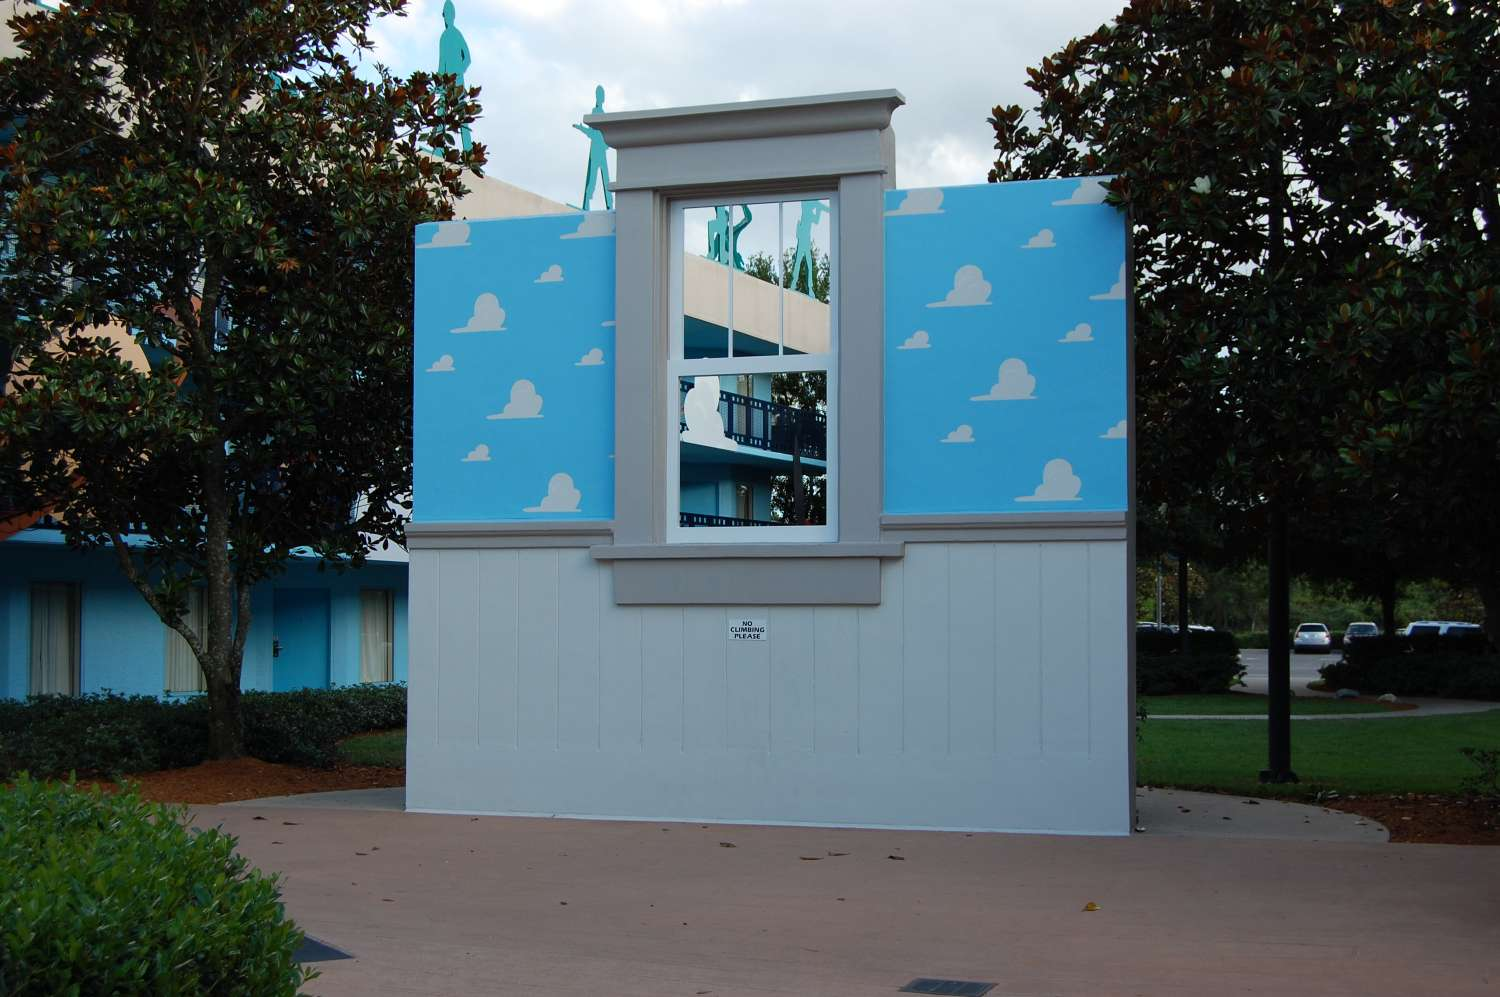 Andy's Room display at the Toy Story Buildings at Disney's All-Star Movies Resort